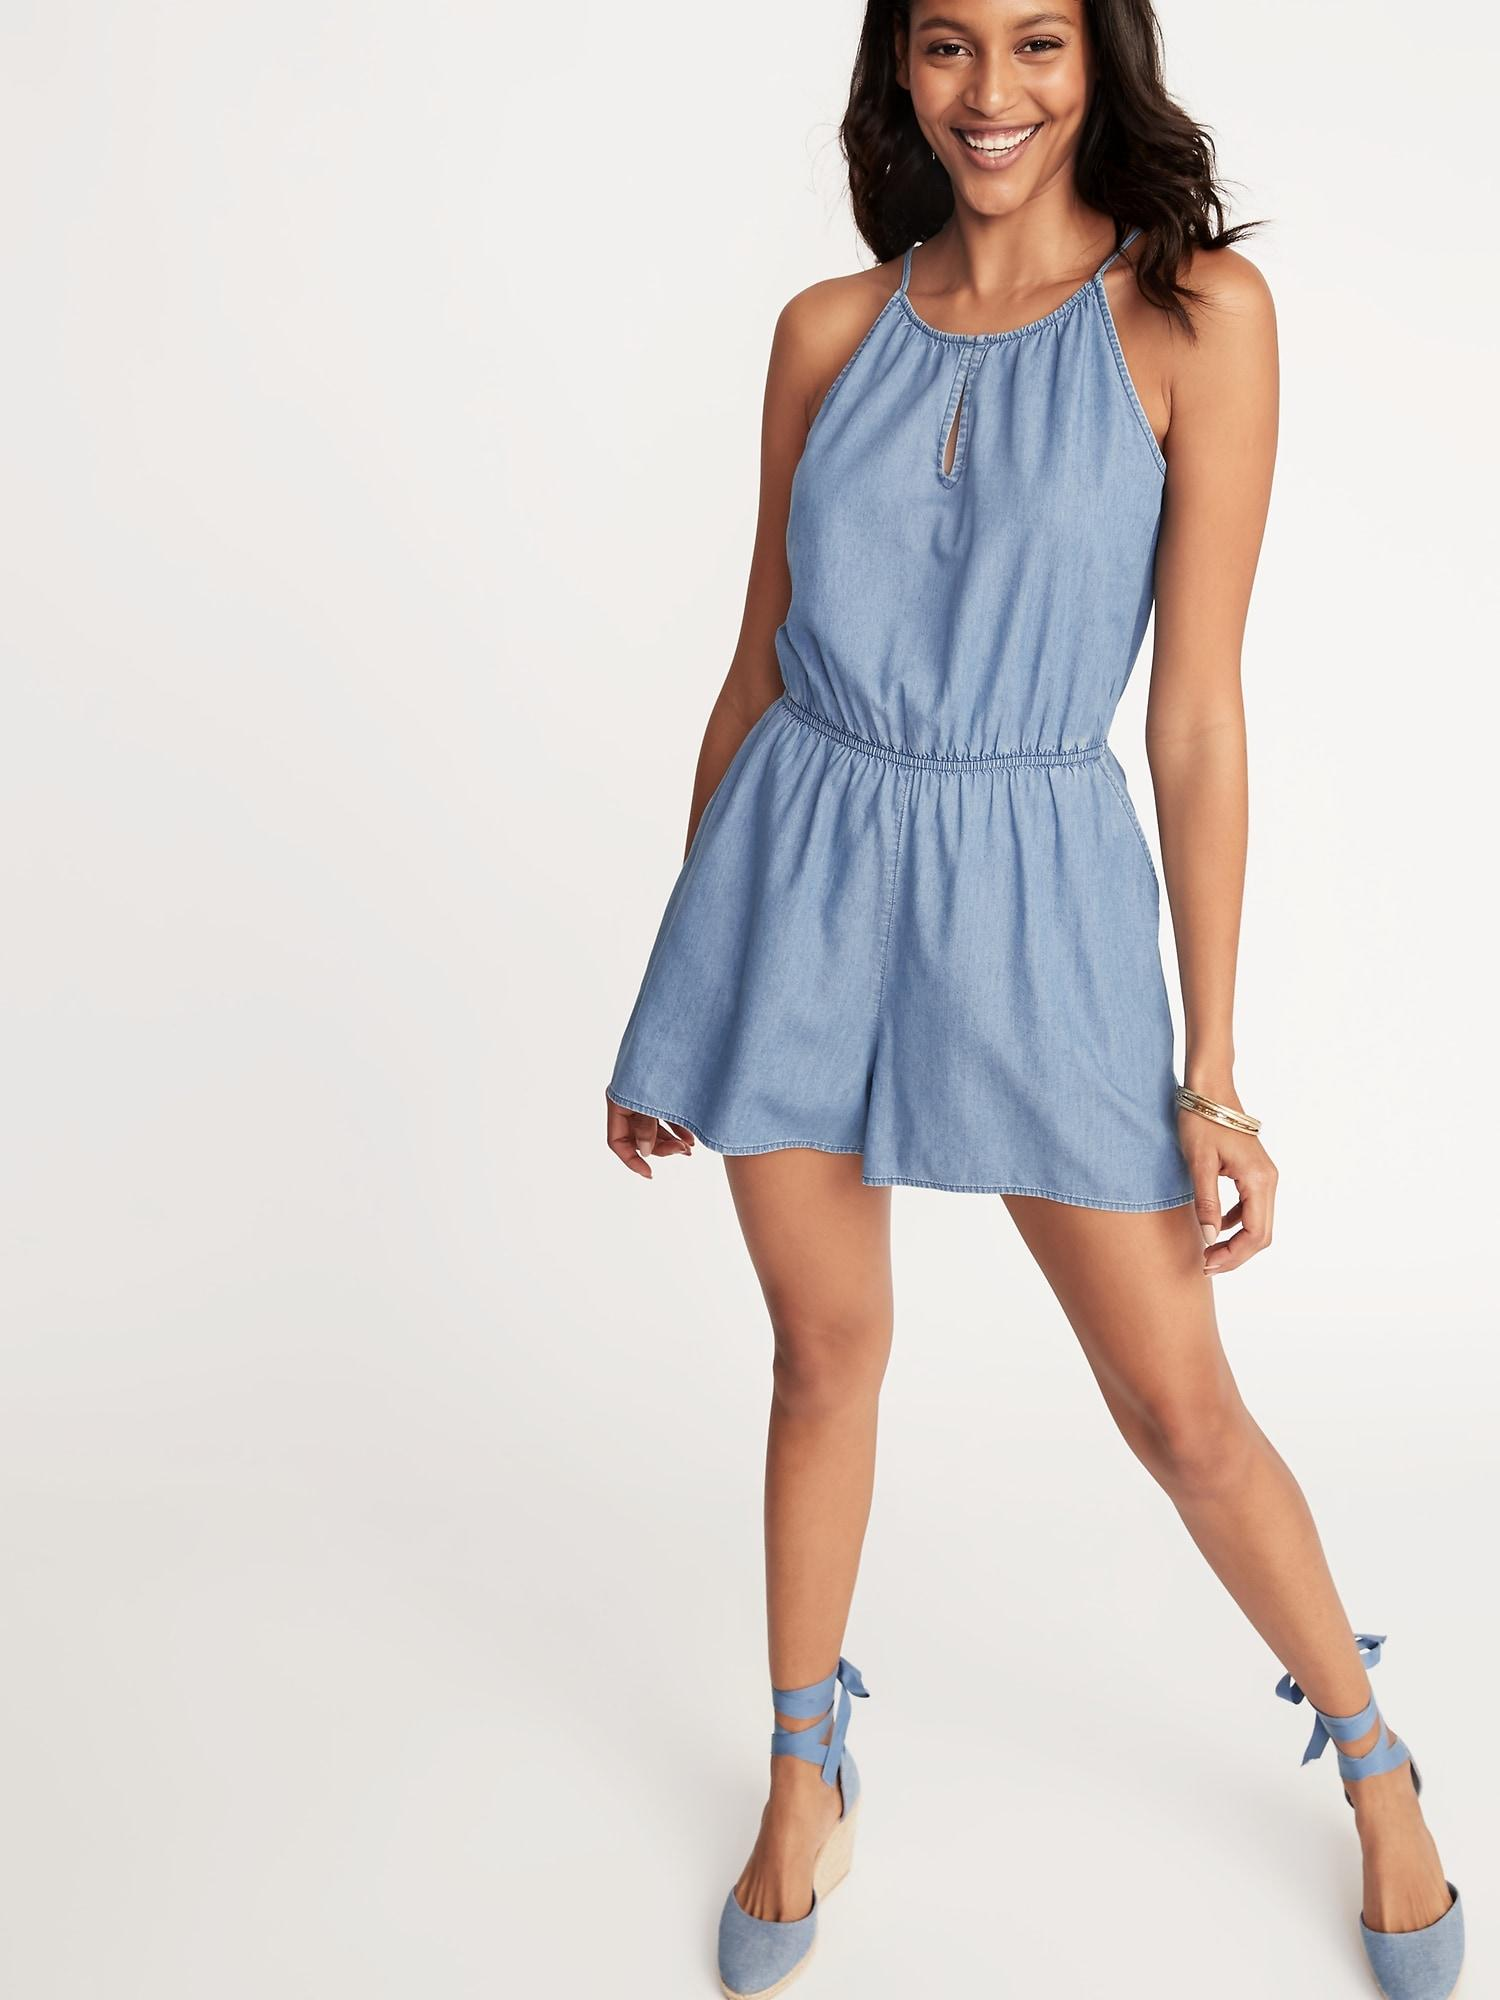 e57b4a3821bd Lyst - Old Navy Chambray Keyhole Romper in Blue